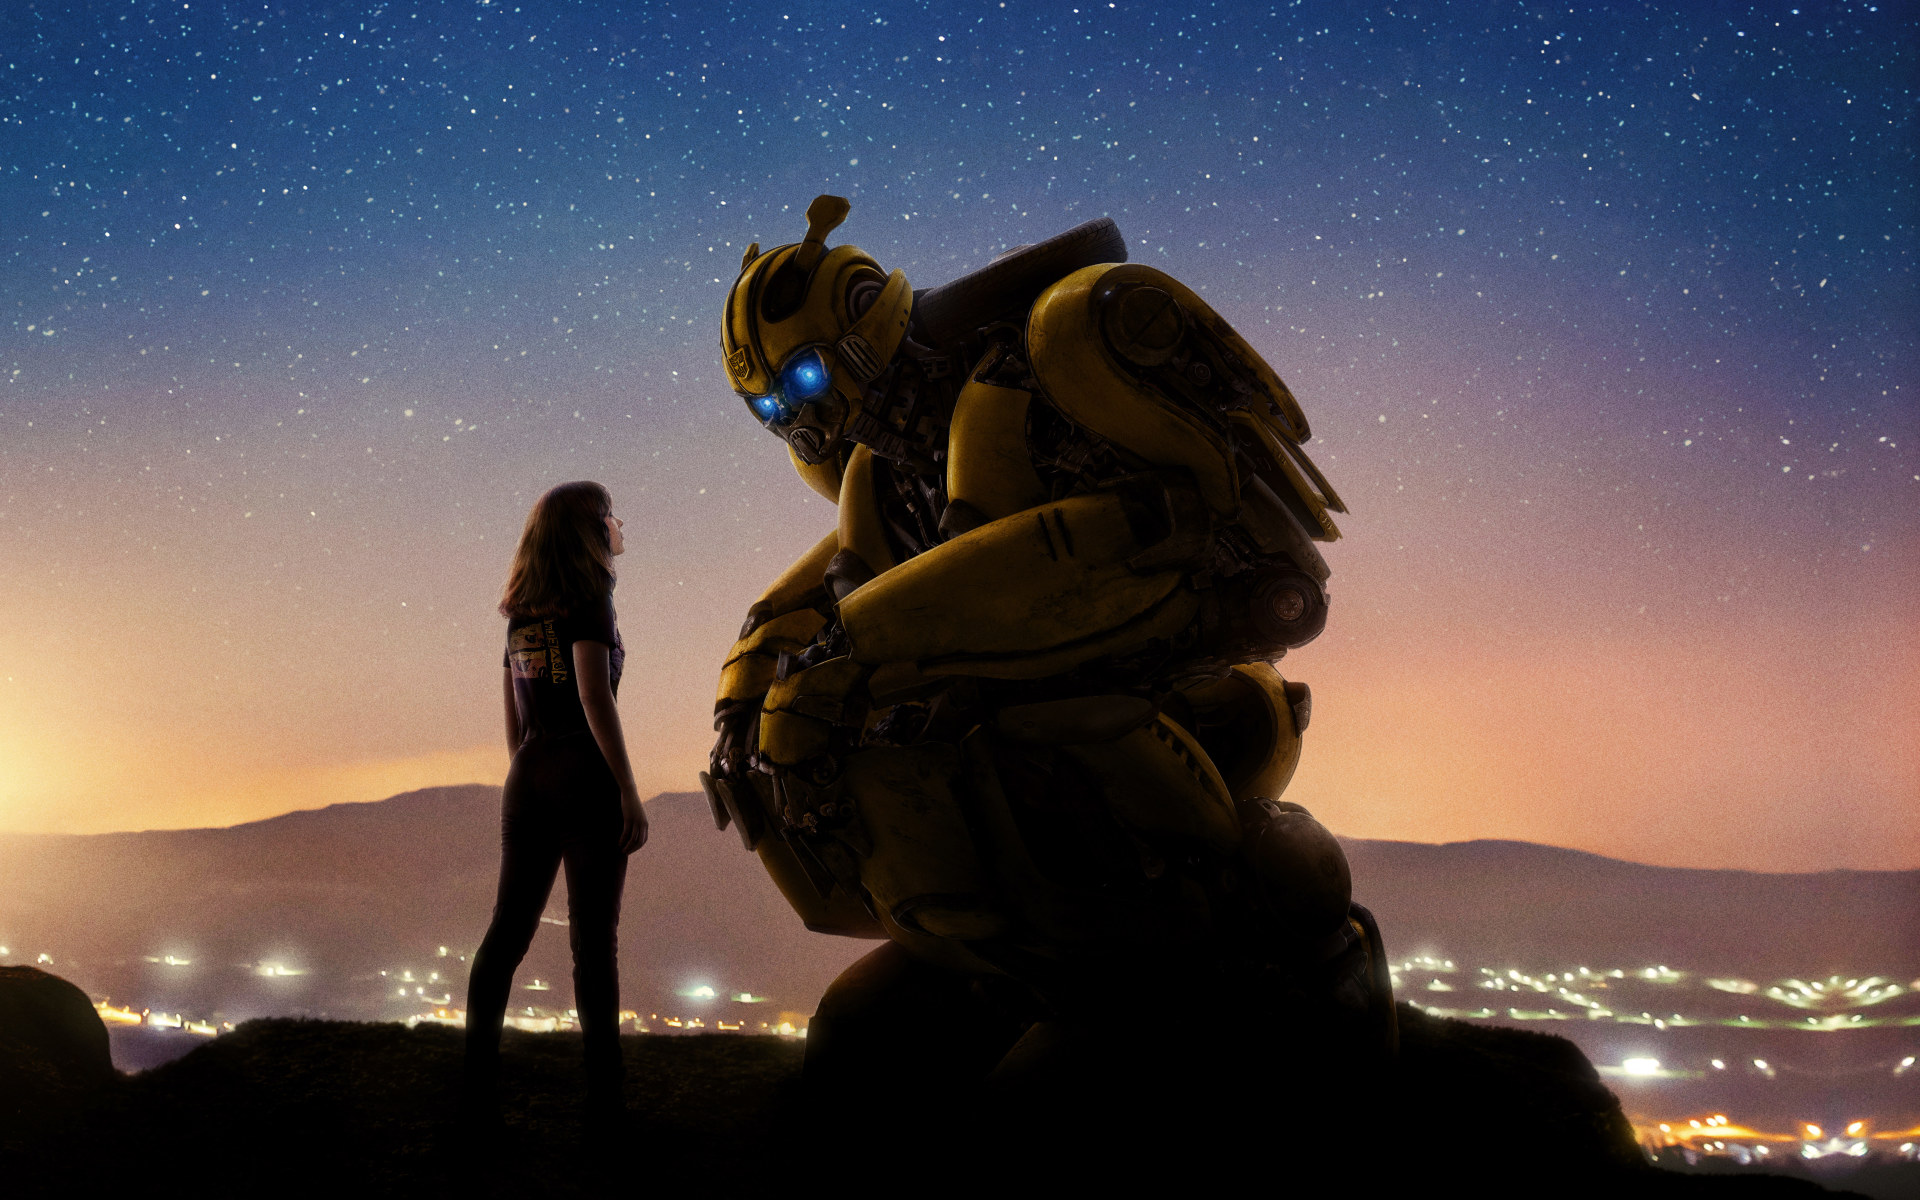 2018 Movie Posters: Bumblebee 2018 Movie Official Poster, HD 8K Wallpaper